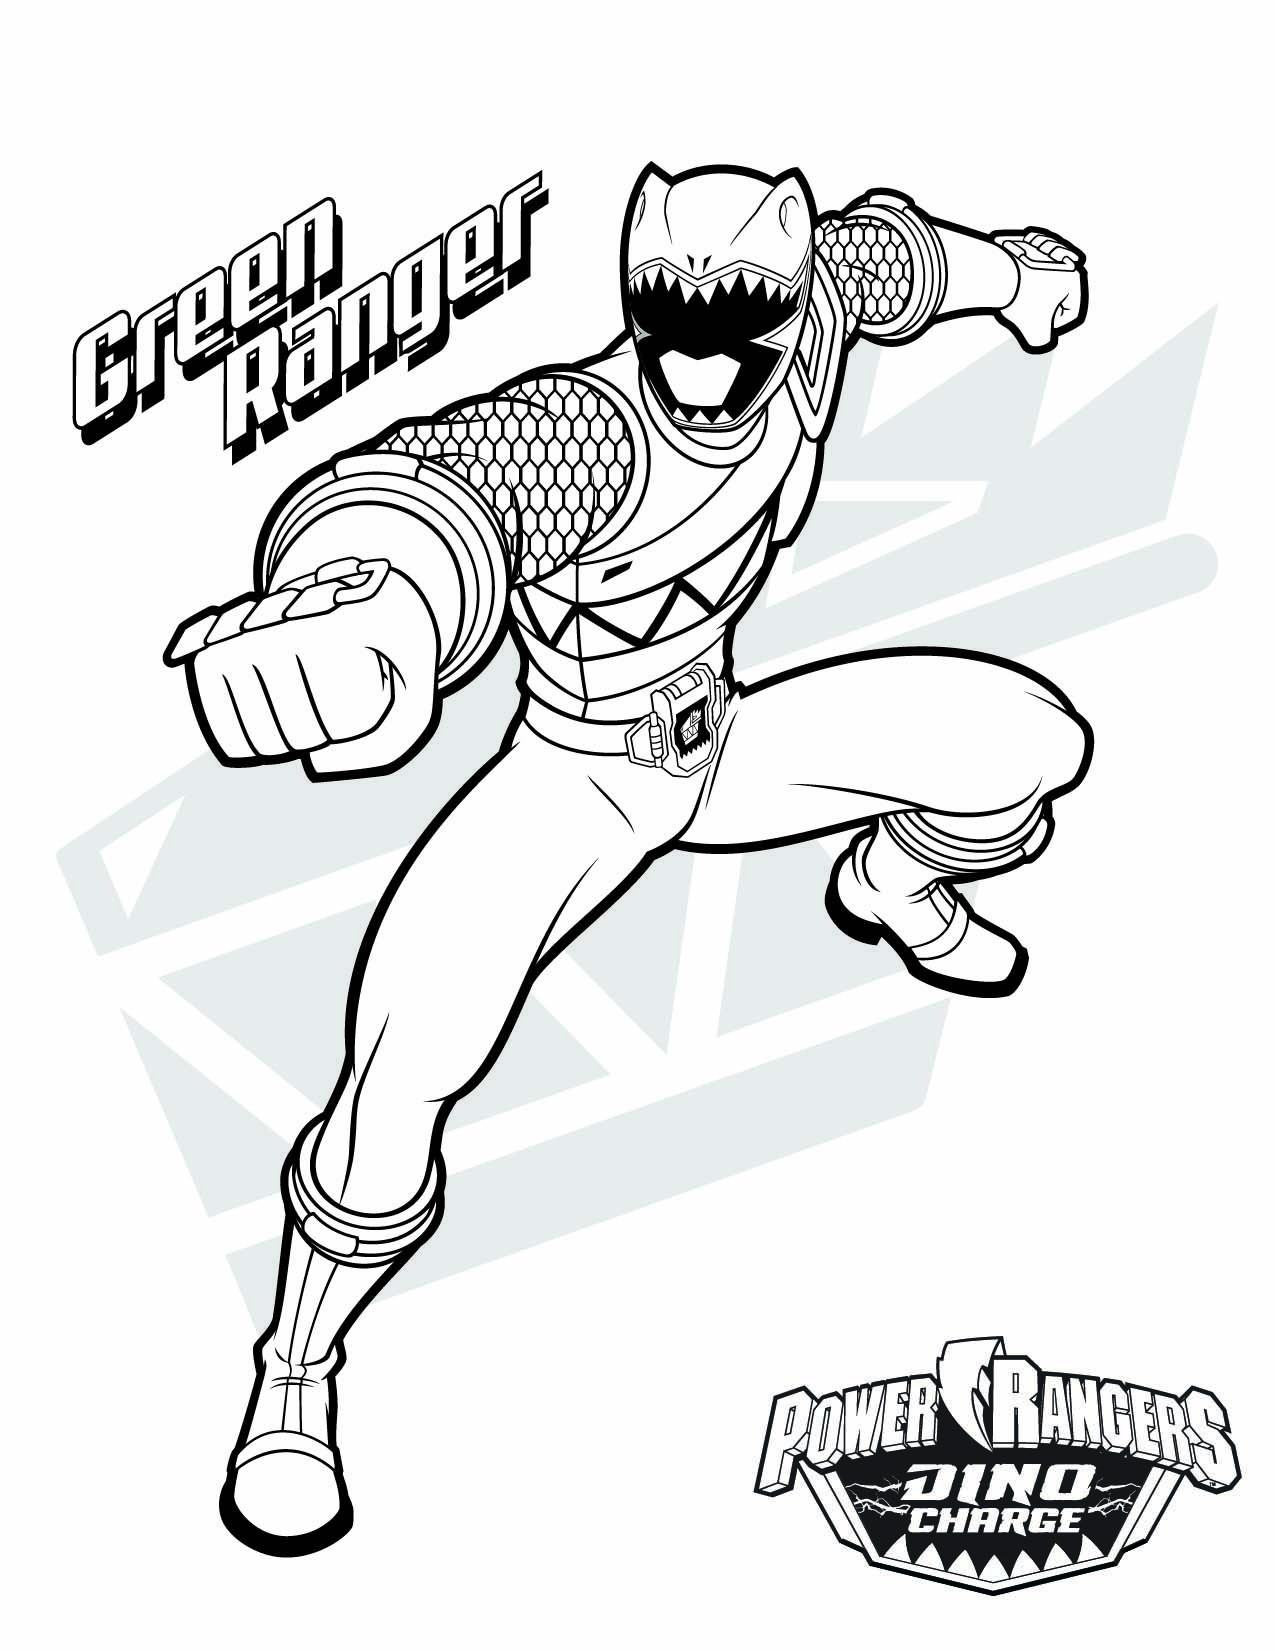 Pin by Power Rangers on Power Rangers Coloring Pages in